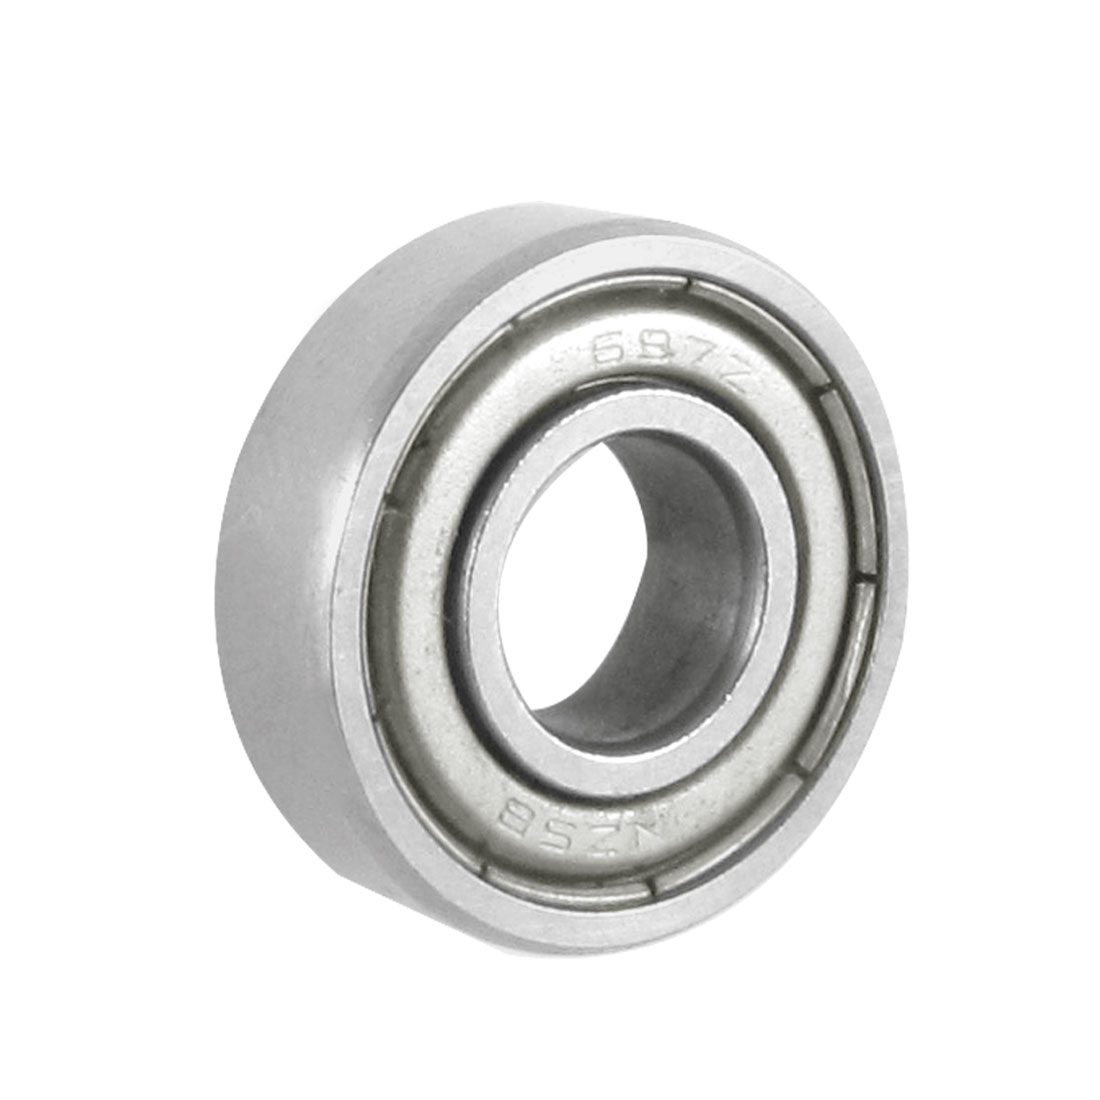 7mm x 17mm x 5mm Dual Metal Shields Deep Groove Mini Ball Bearing 697Z